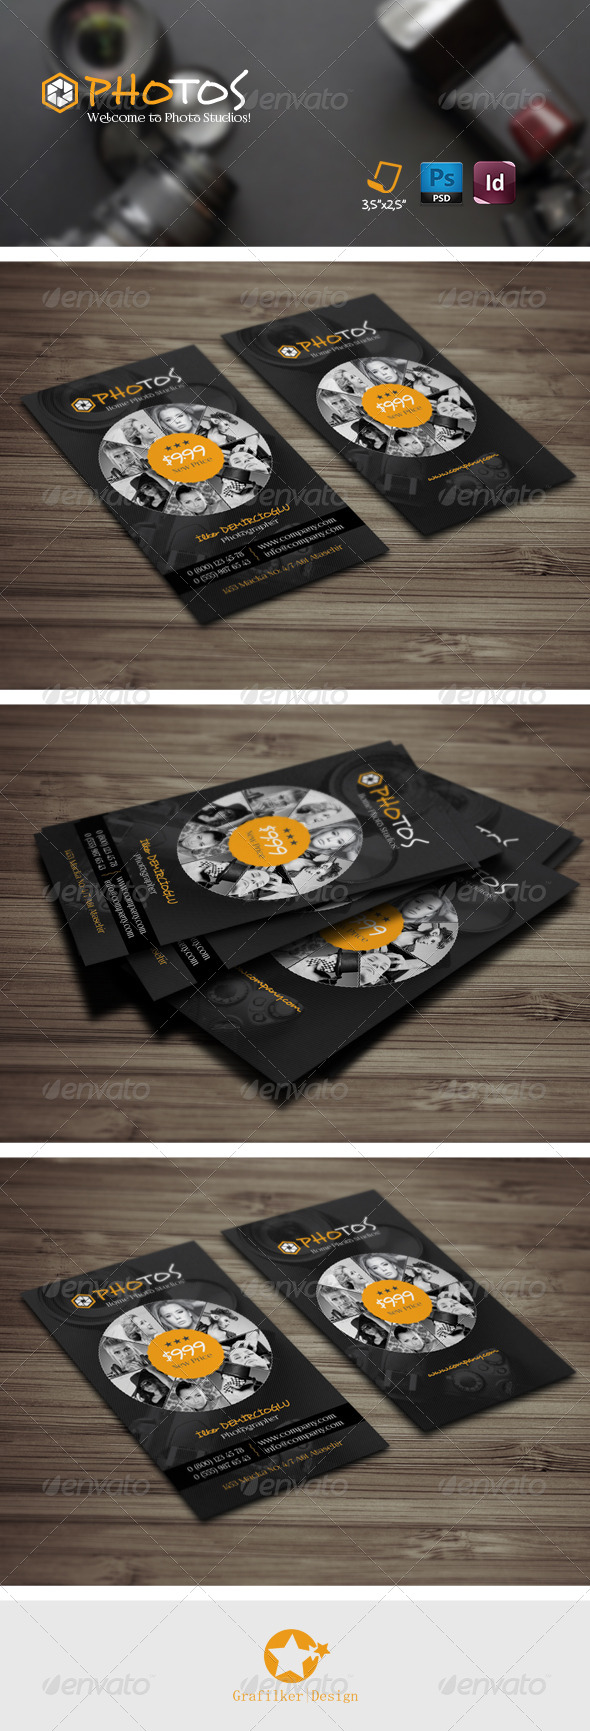 GraphicRiver Photography Business Card Templates 7679467